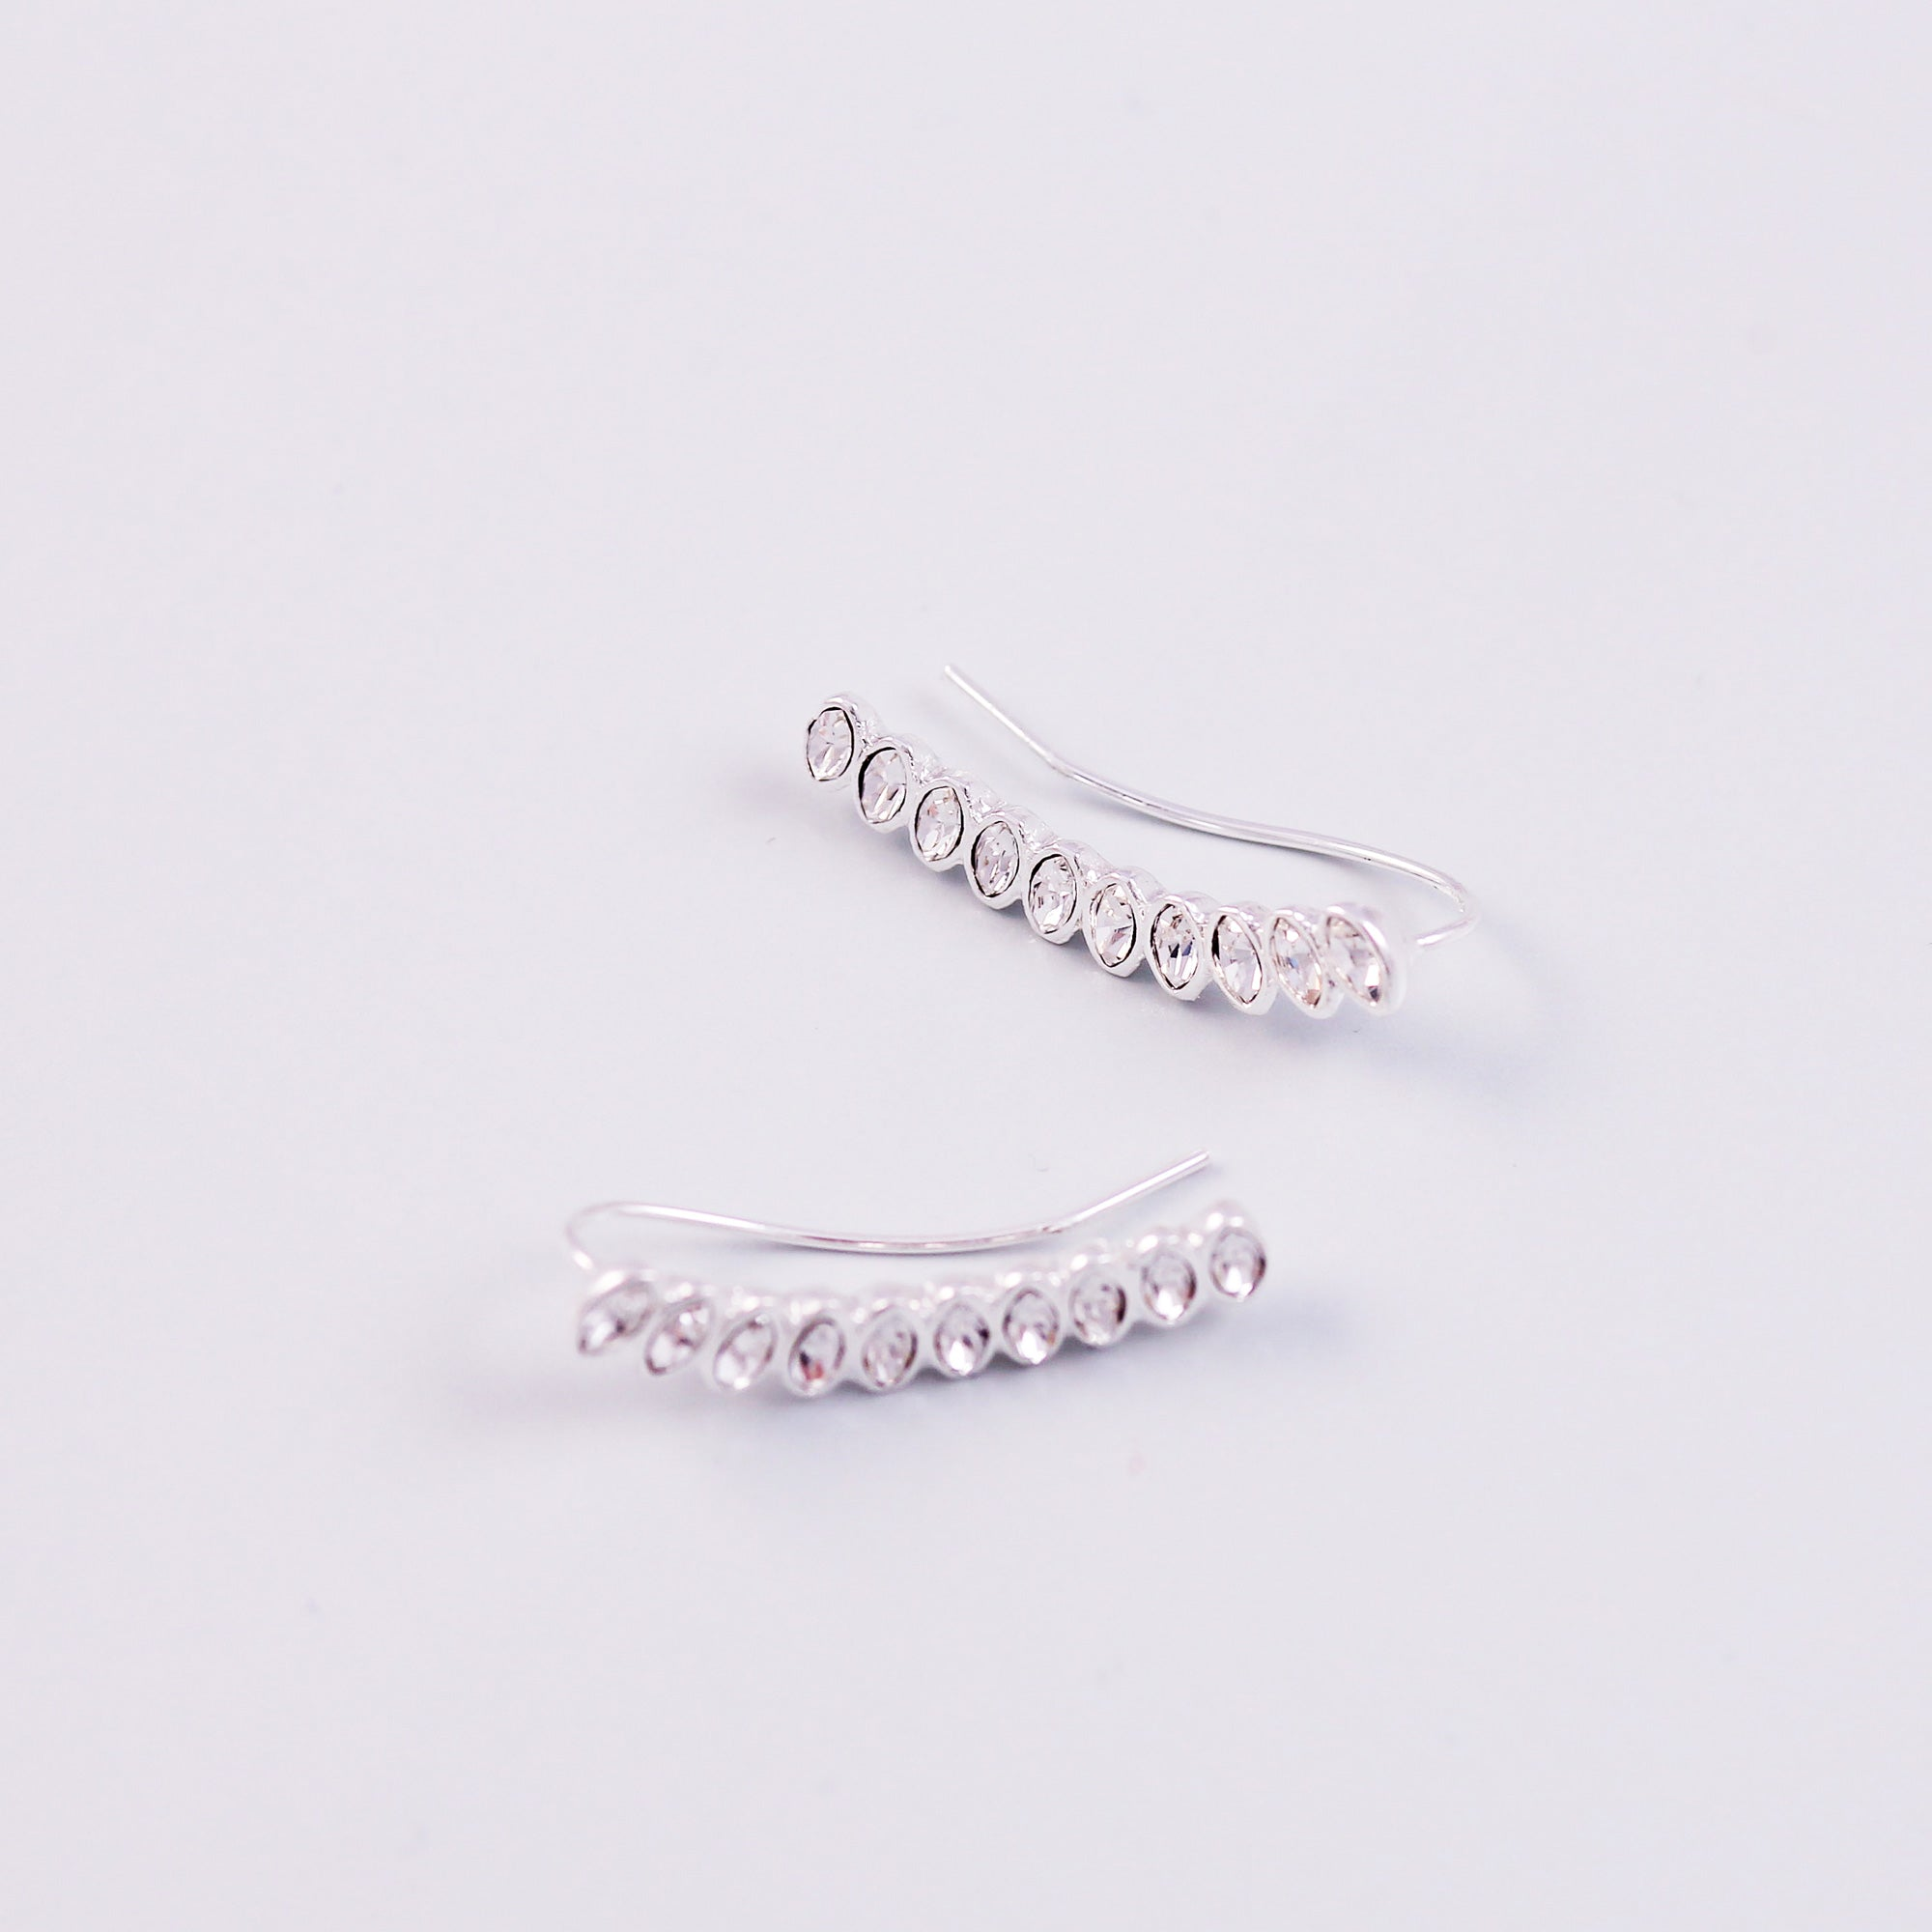 Silver & Crystal Cherry Blossom Sakura Ear Crawlers